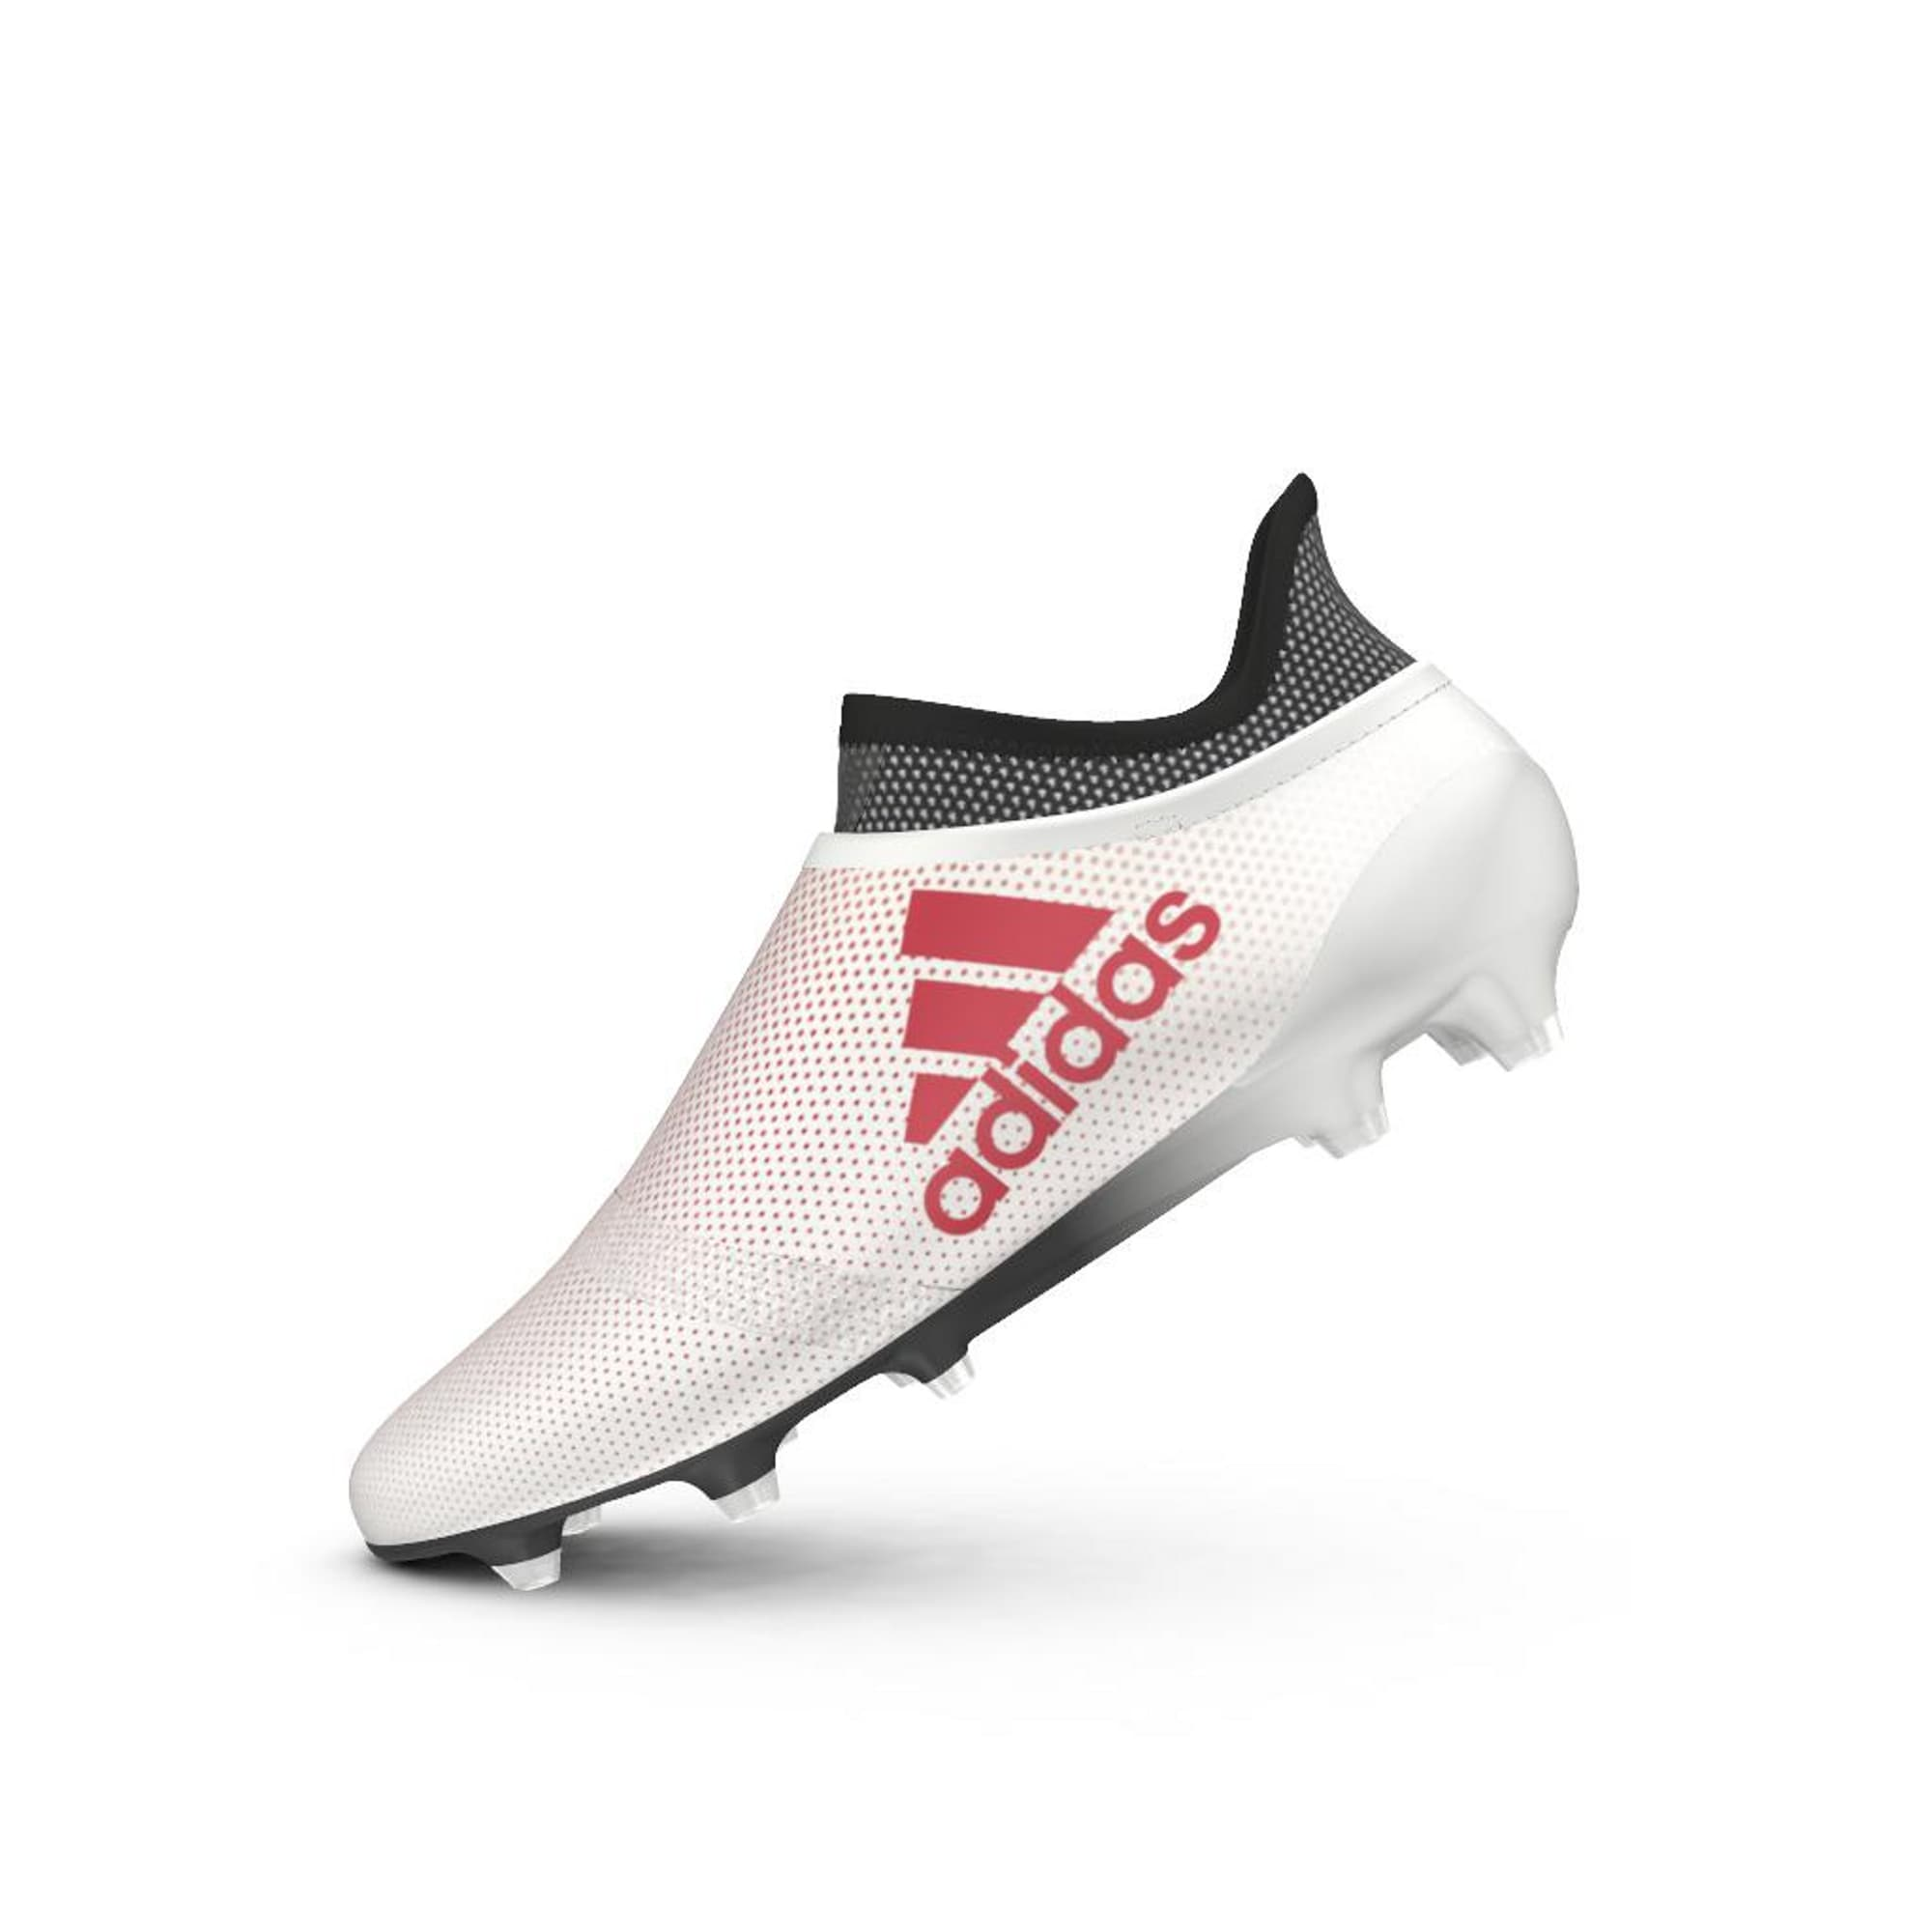 6f239eab8 ... adidas x 17+ purespeed firm ground boots grey real coral core black